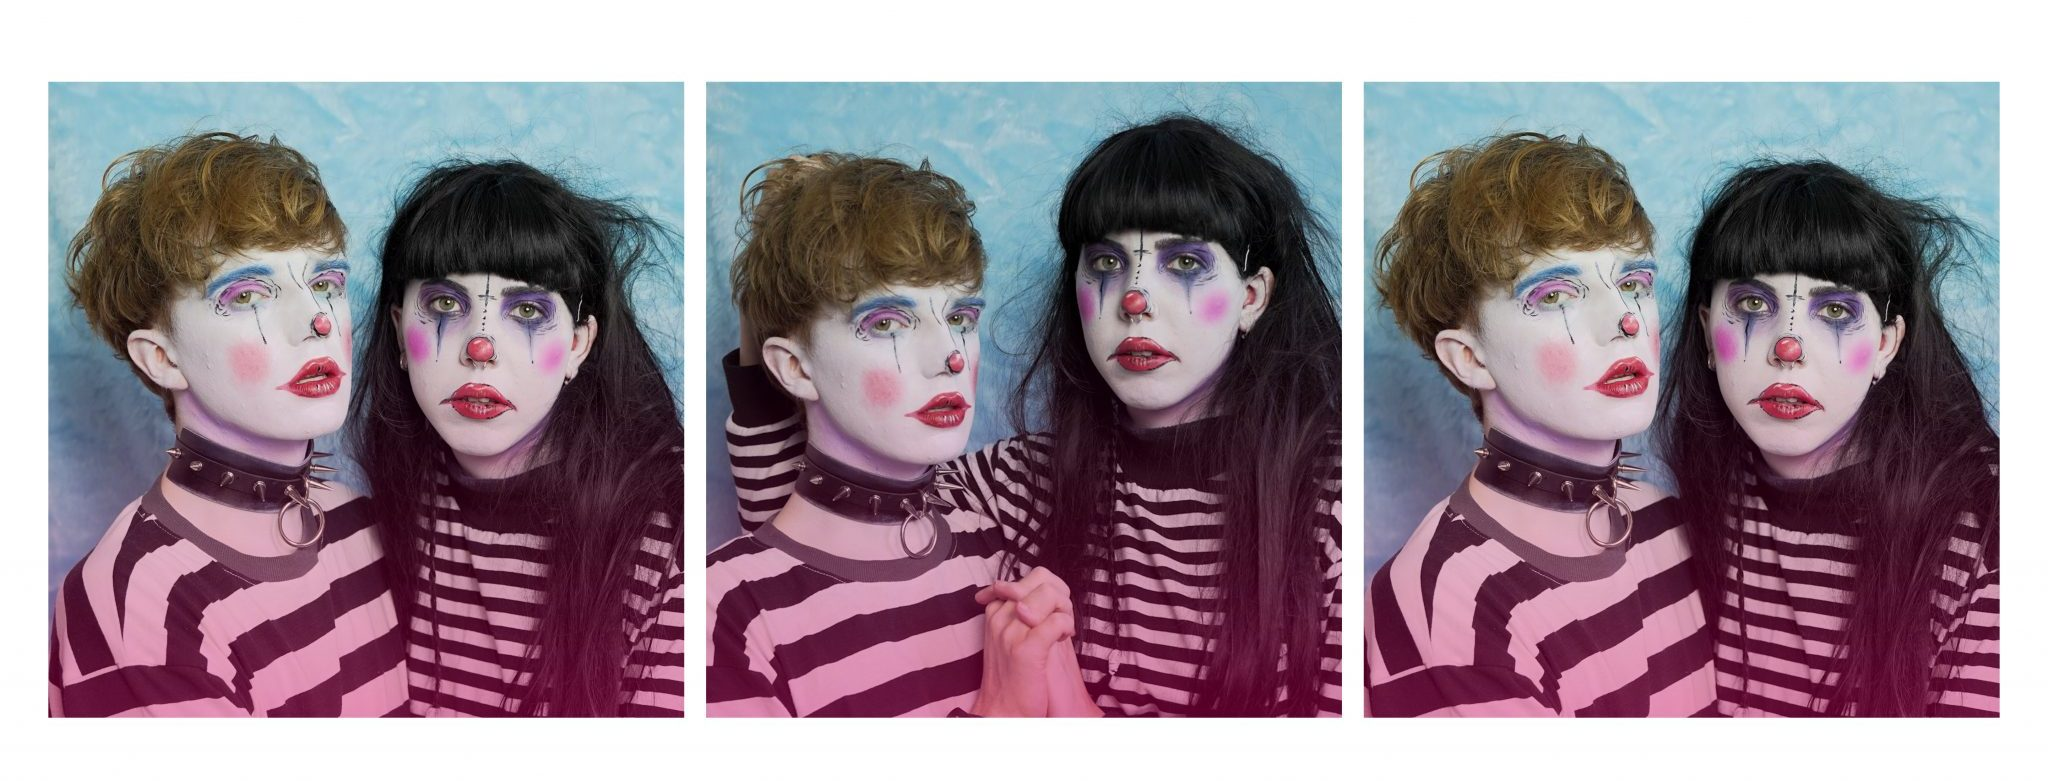 A tryptich of images, each slightly different from each other in pose - featuring Alex Cubb and Remi May. Alex is to the left and is wearing a thick black and white striped t-shirt with faux leather spiked wrist and neck cuffs. He has clown style makeup, white face, red cheeks, lips and nose. He has light brown short hair. Remi is to the right, she is wearing a long sleeved thin striped black and white t-shirt. She has similar makeup to Alex with darker eye makeup. Her hair is long and dark with a short full fringe. They are facing the camera.